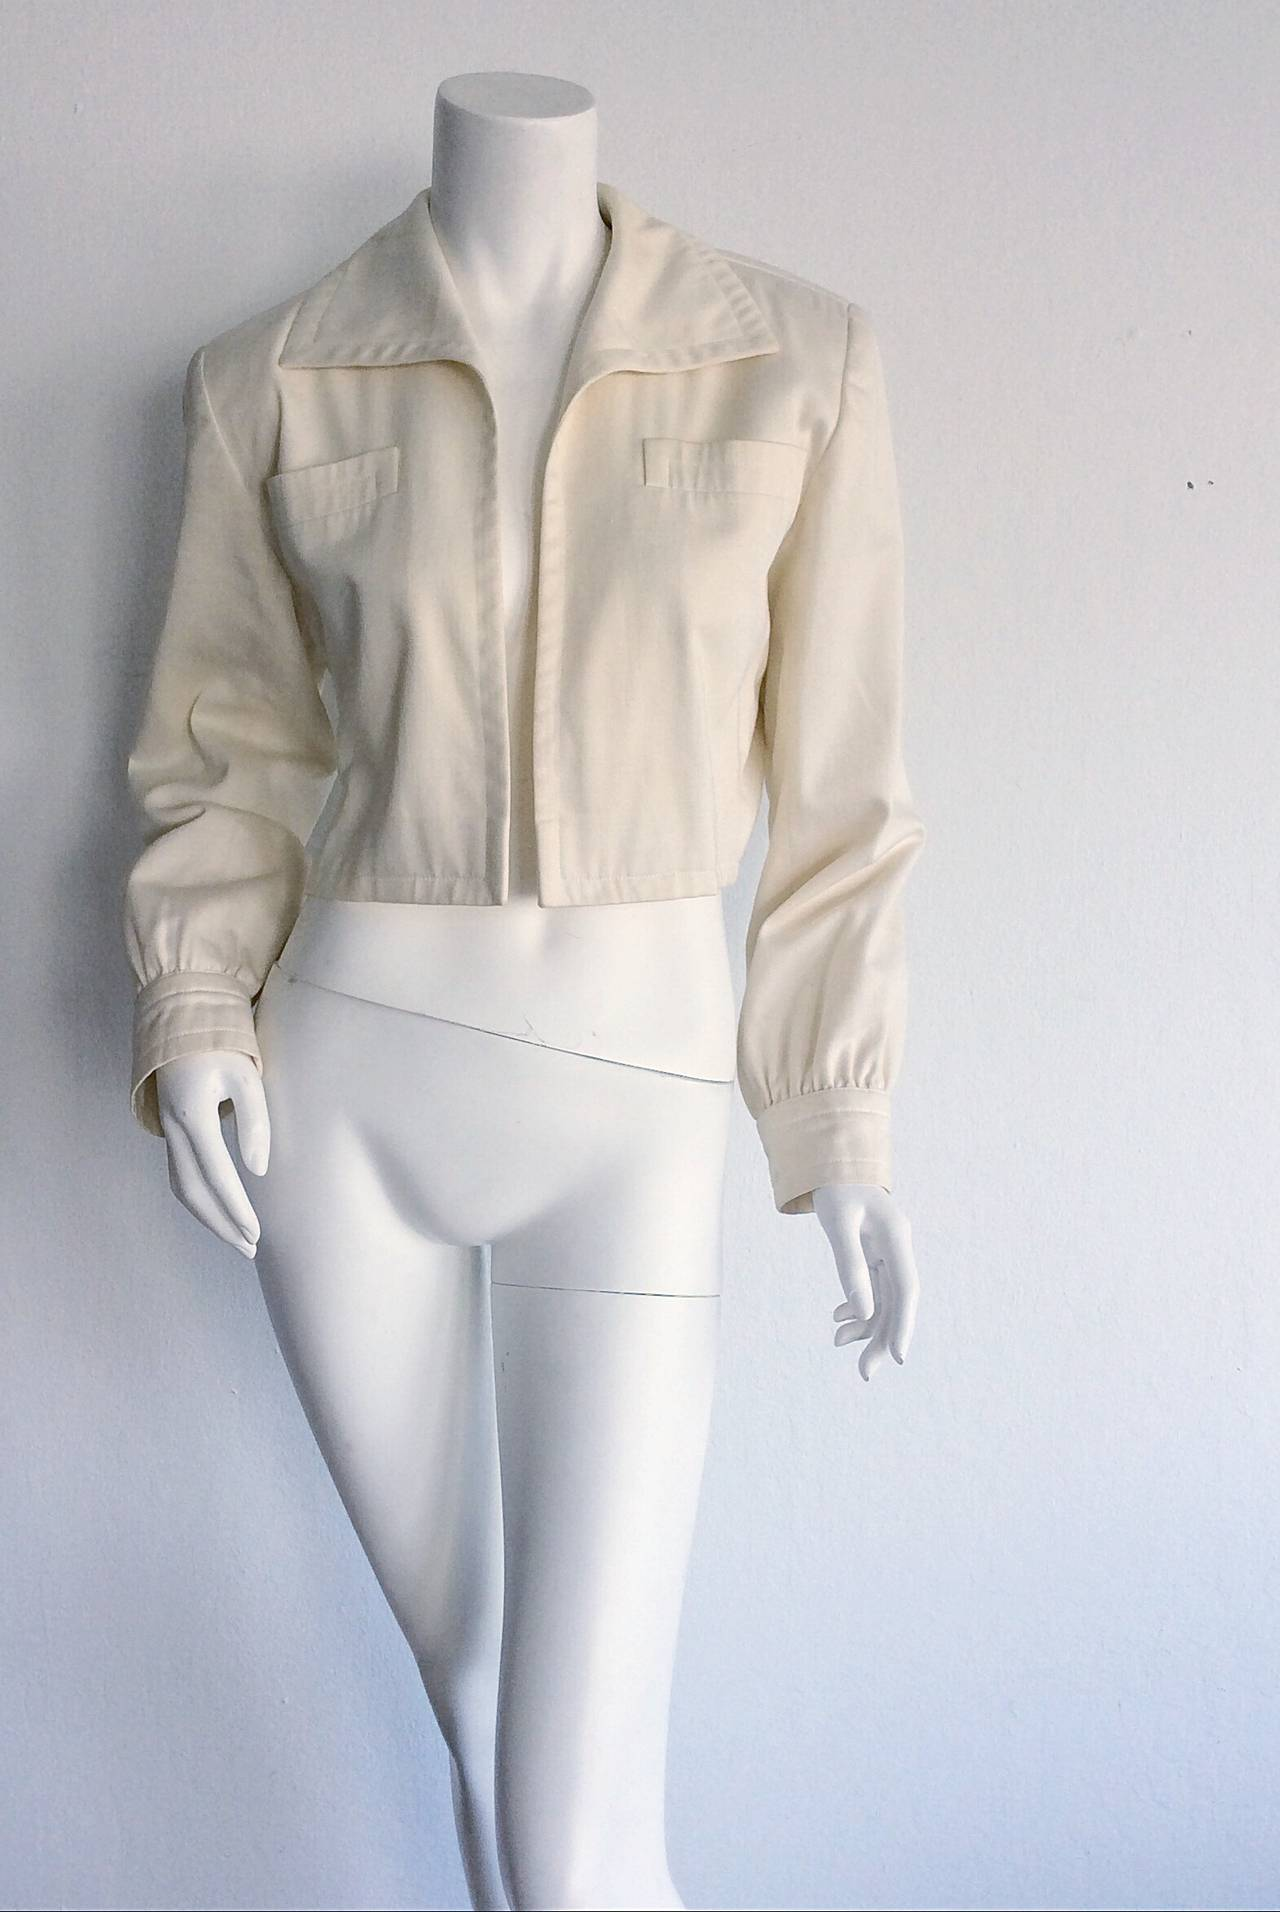 Beautiful vintage YSL 'Rive Gauche' cropped cotton blazer/bolero! Perfect ivory color, with chic long sleeves that look fantastic with sleeves bunched up, and the collar flipped! Easily transitions from day to night. Goes great with jeans, and